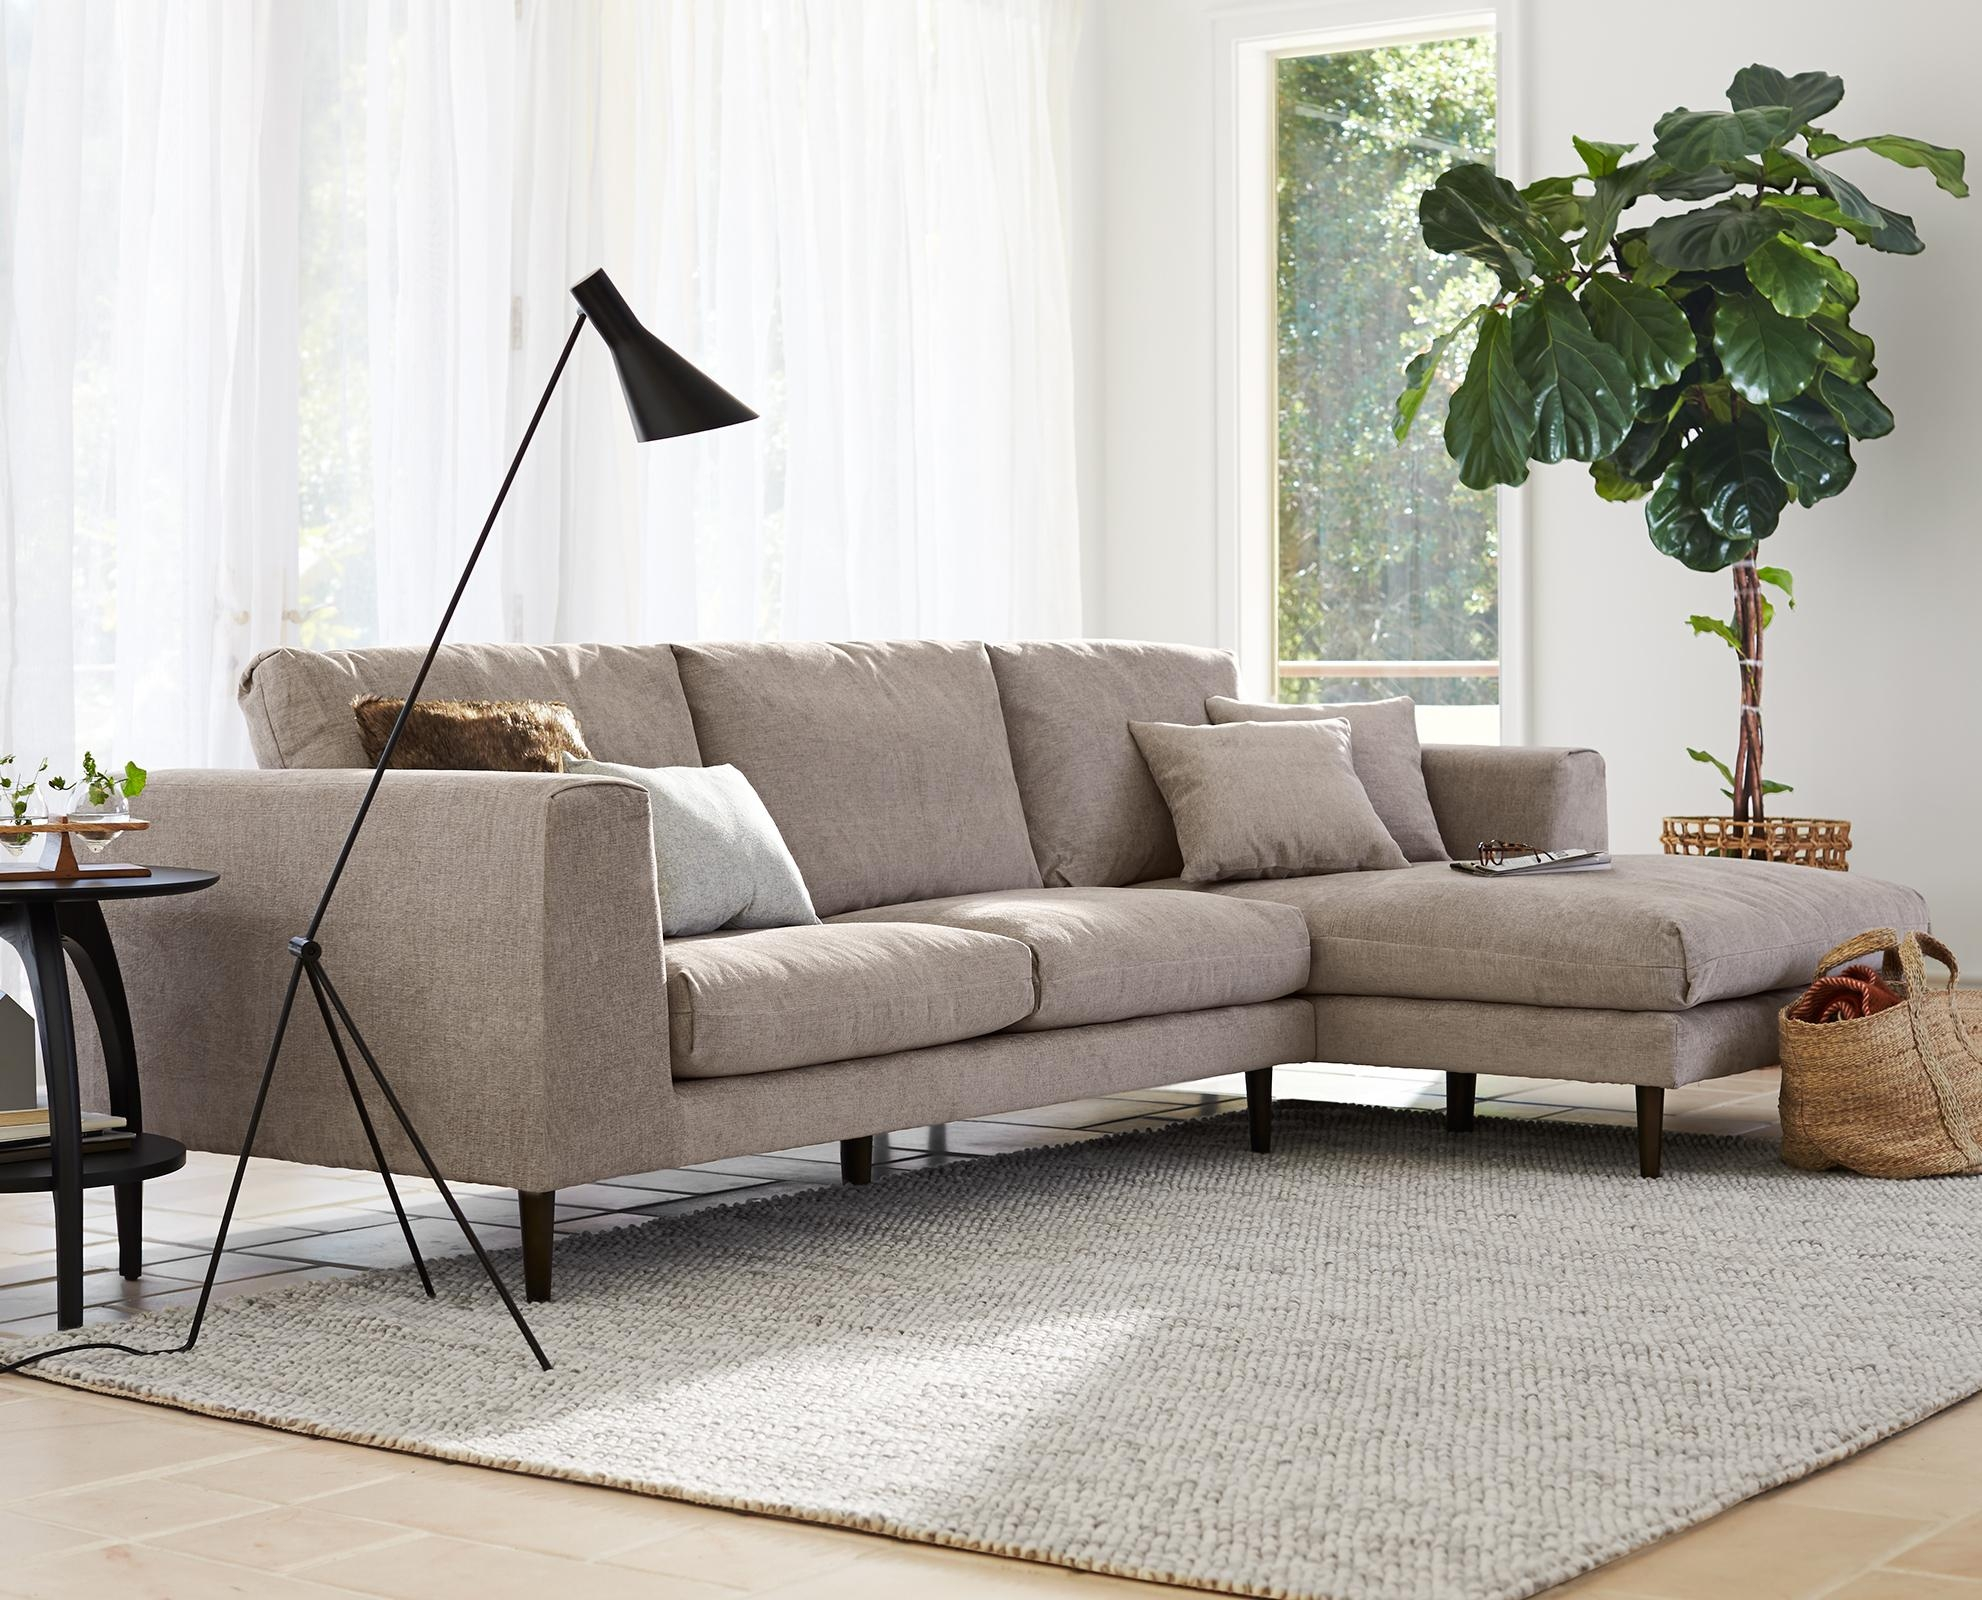 20 Choices Of Sectional Sofas Portland Sofa Ideas